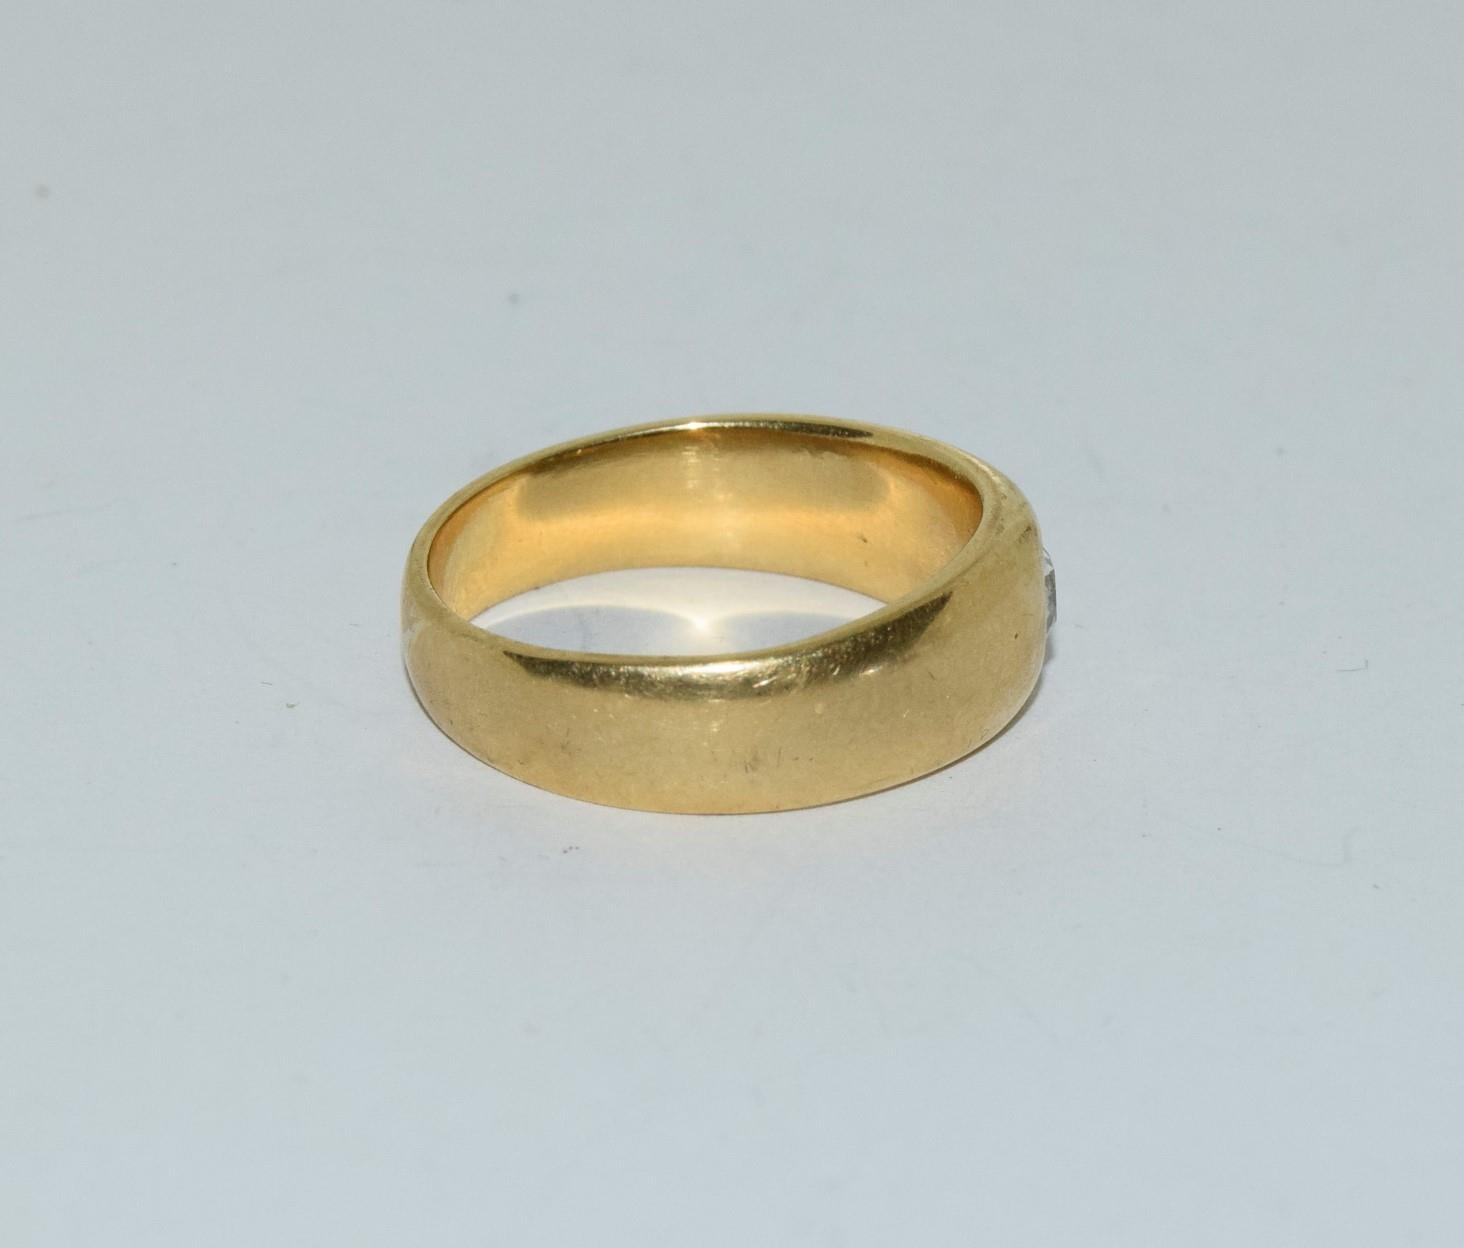 18ct gold mans signet ring set with diamond solitaire of approx 0.25ct size R 9.5gm - Image 2 of 6